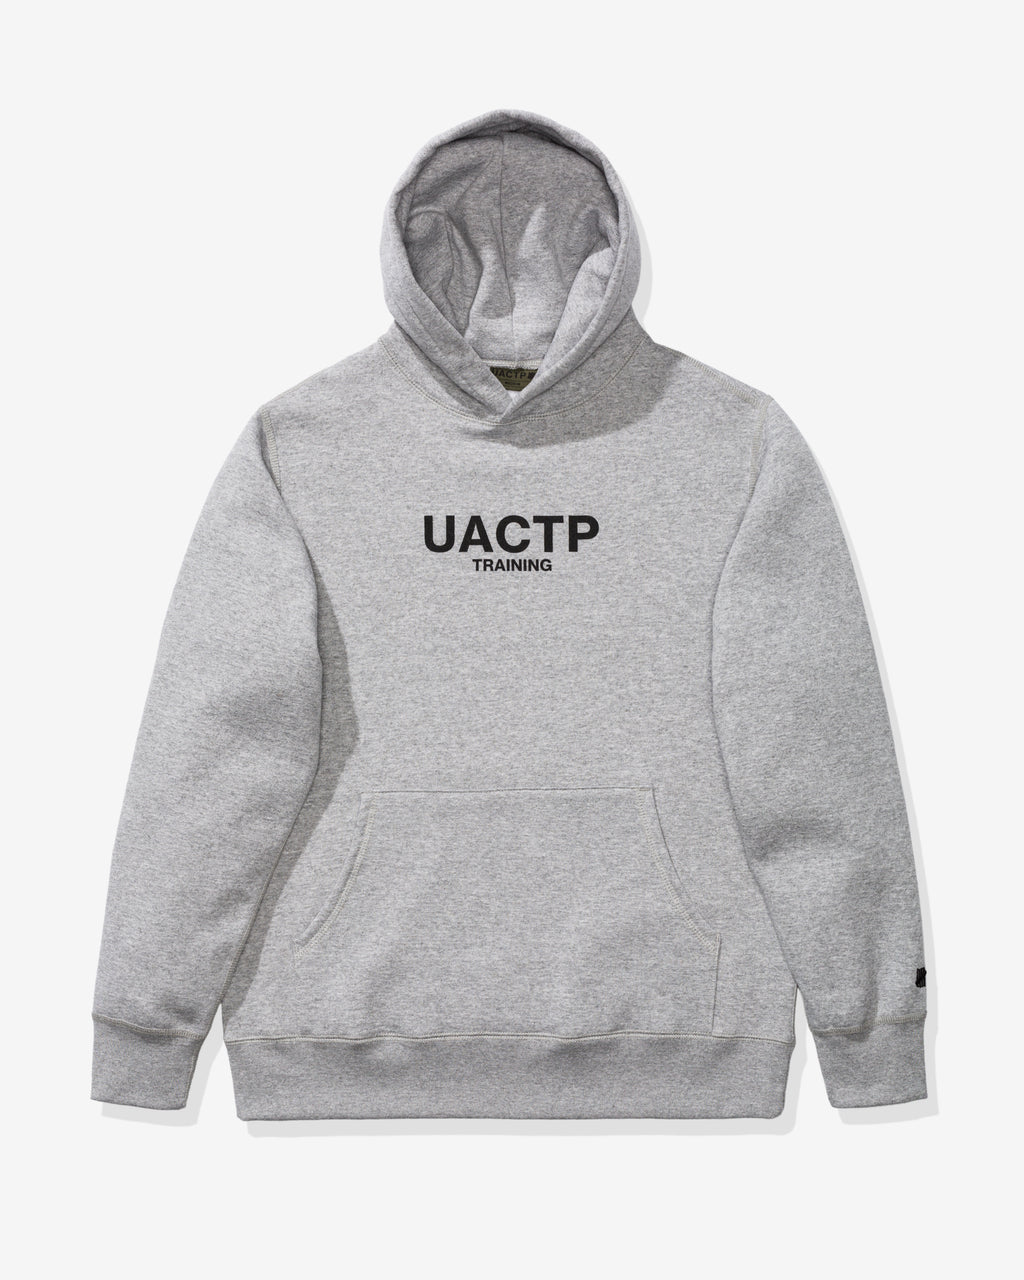 UACTP TRAINING HOODIE - HEATHER GREY